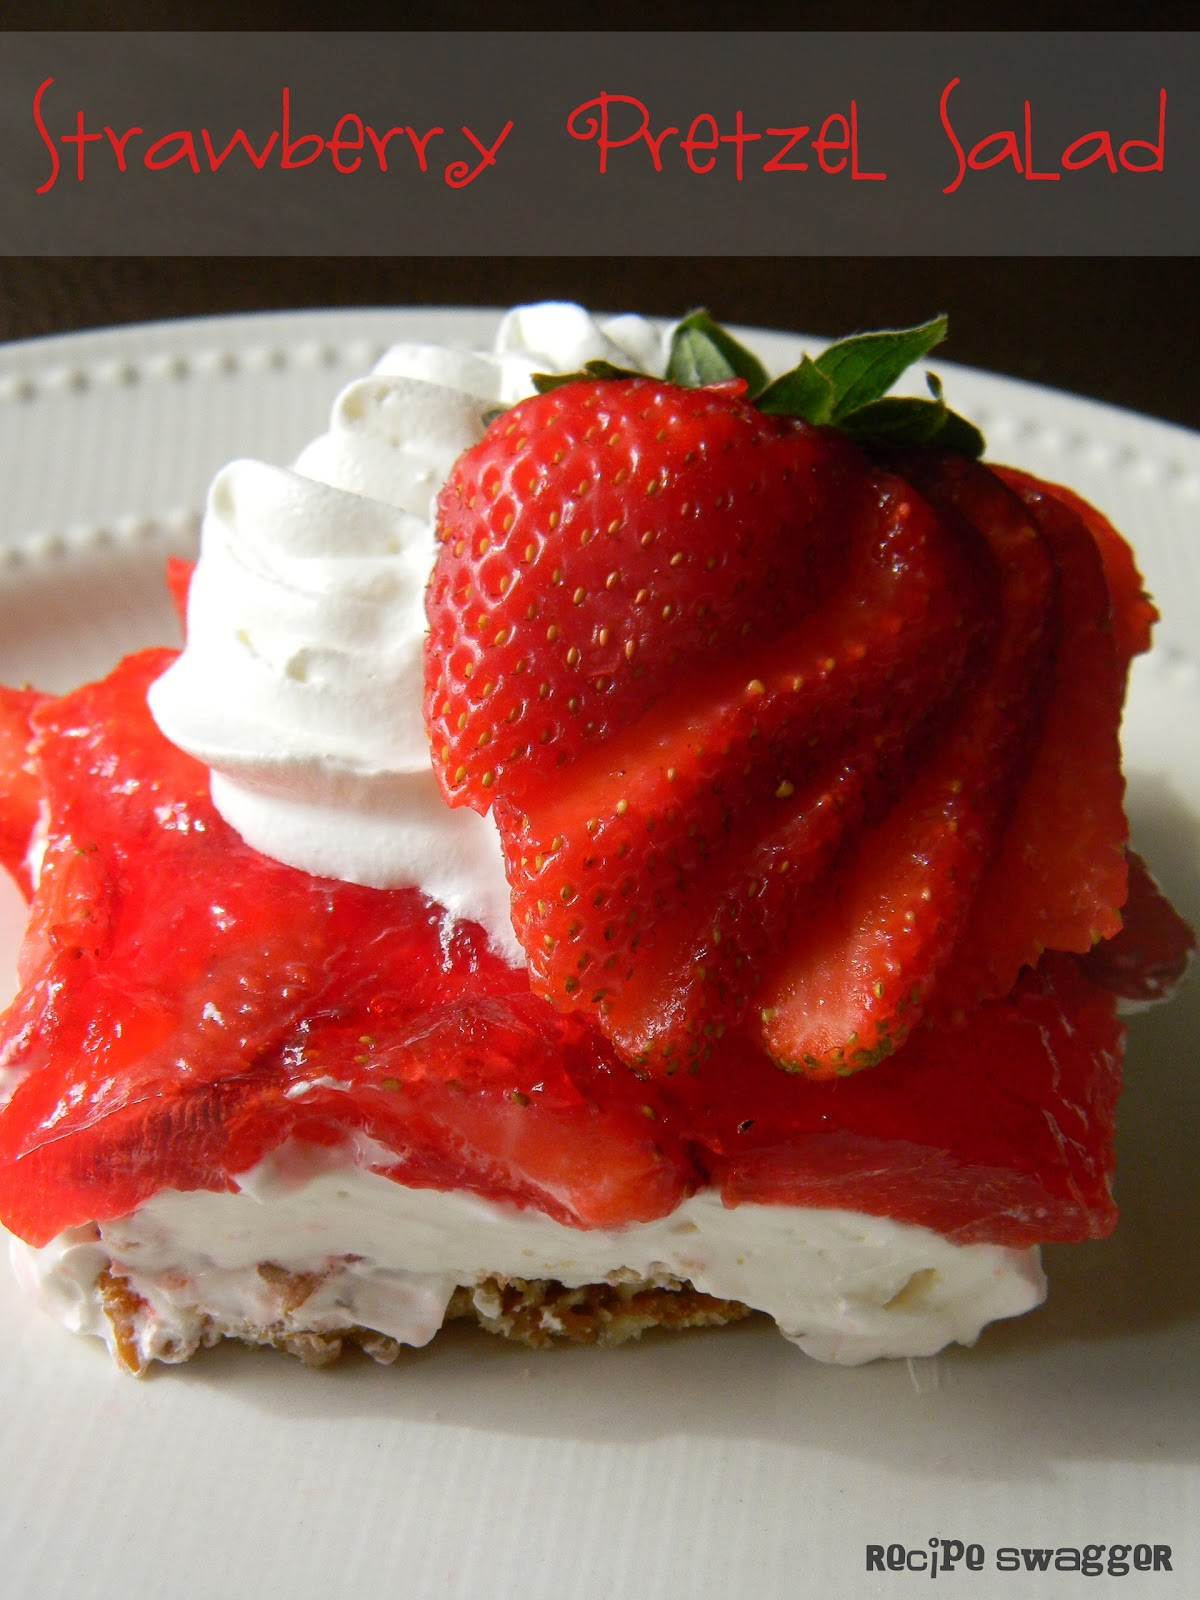 Recipe Swagger: Strawberry Pretzel Salad